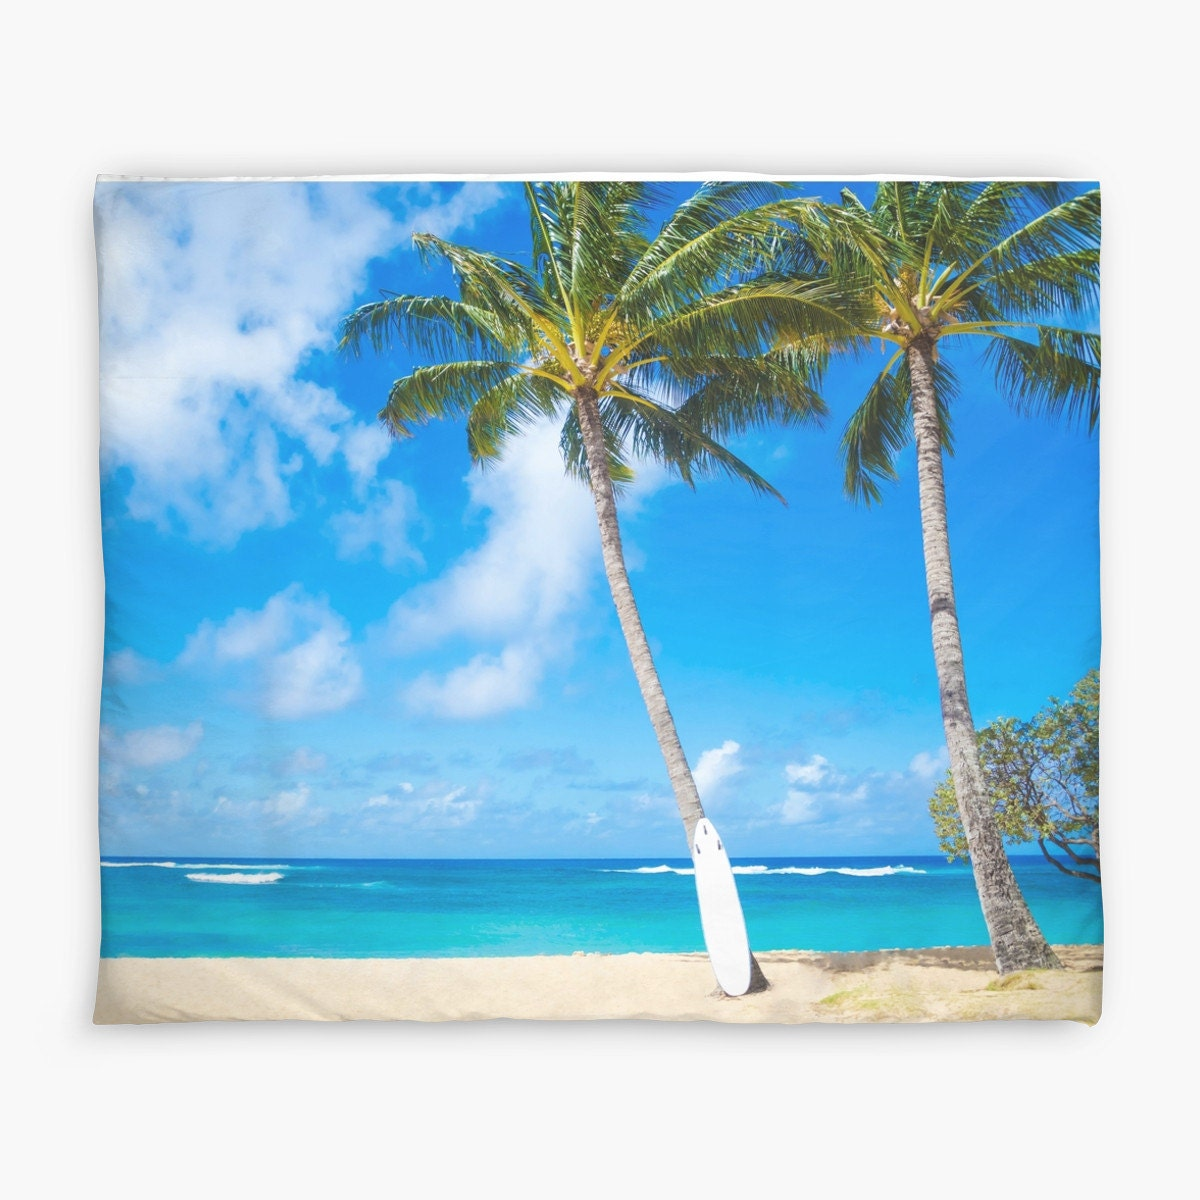 palm duvet cover with palm tree and surfboard in hawaii water. Black Bedroom Furniture Sets. Home Design Ideas